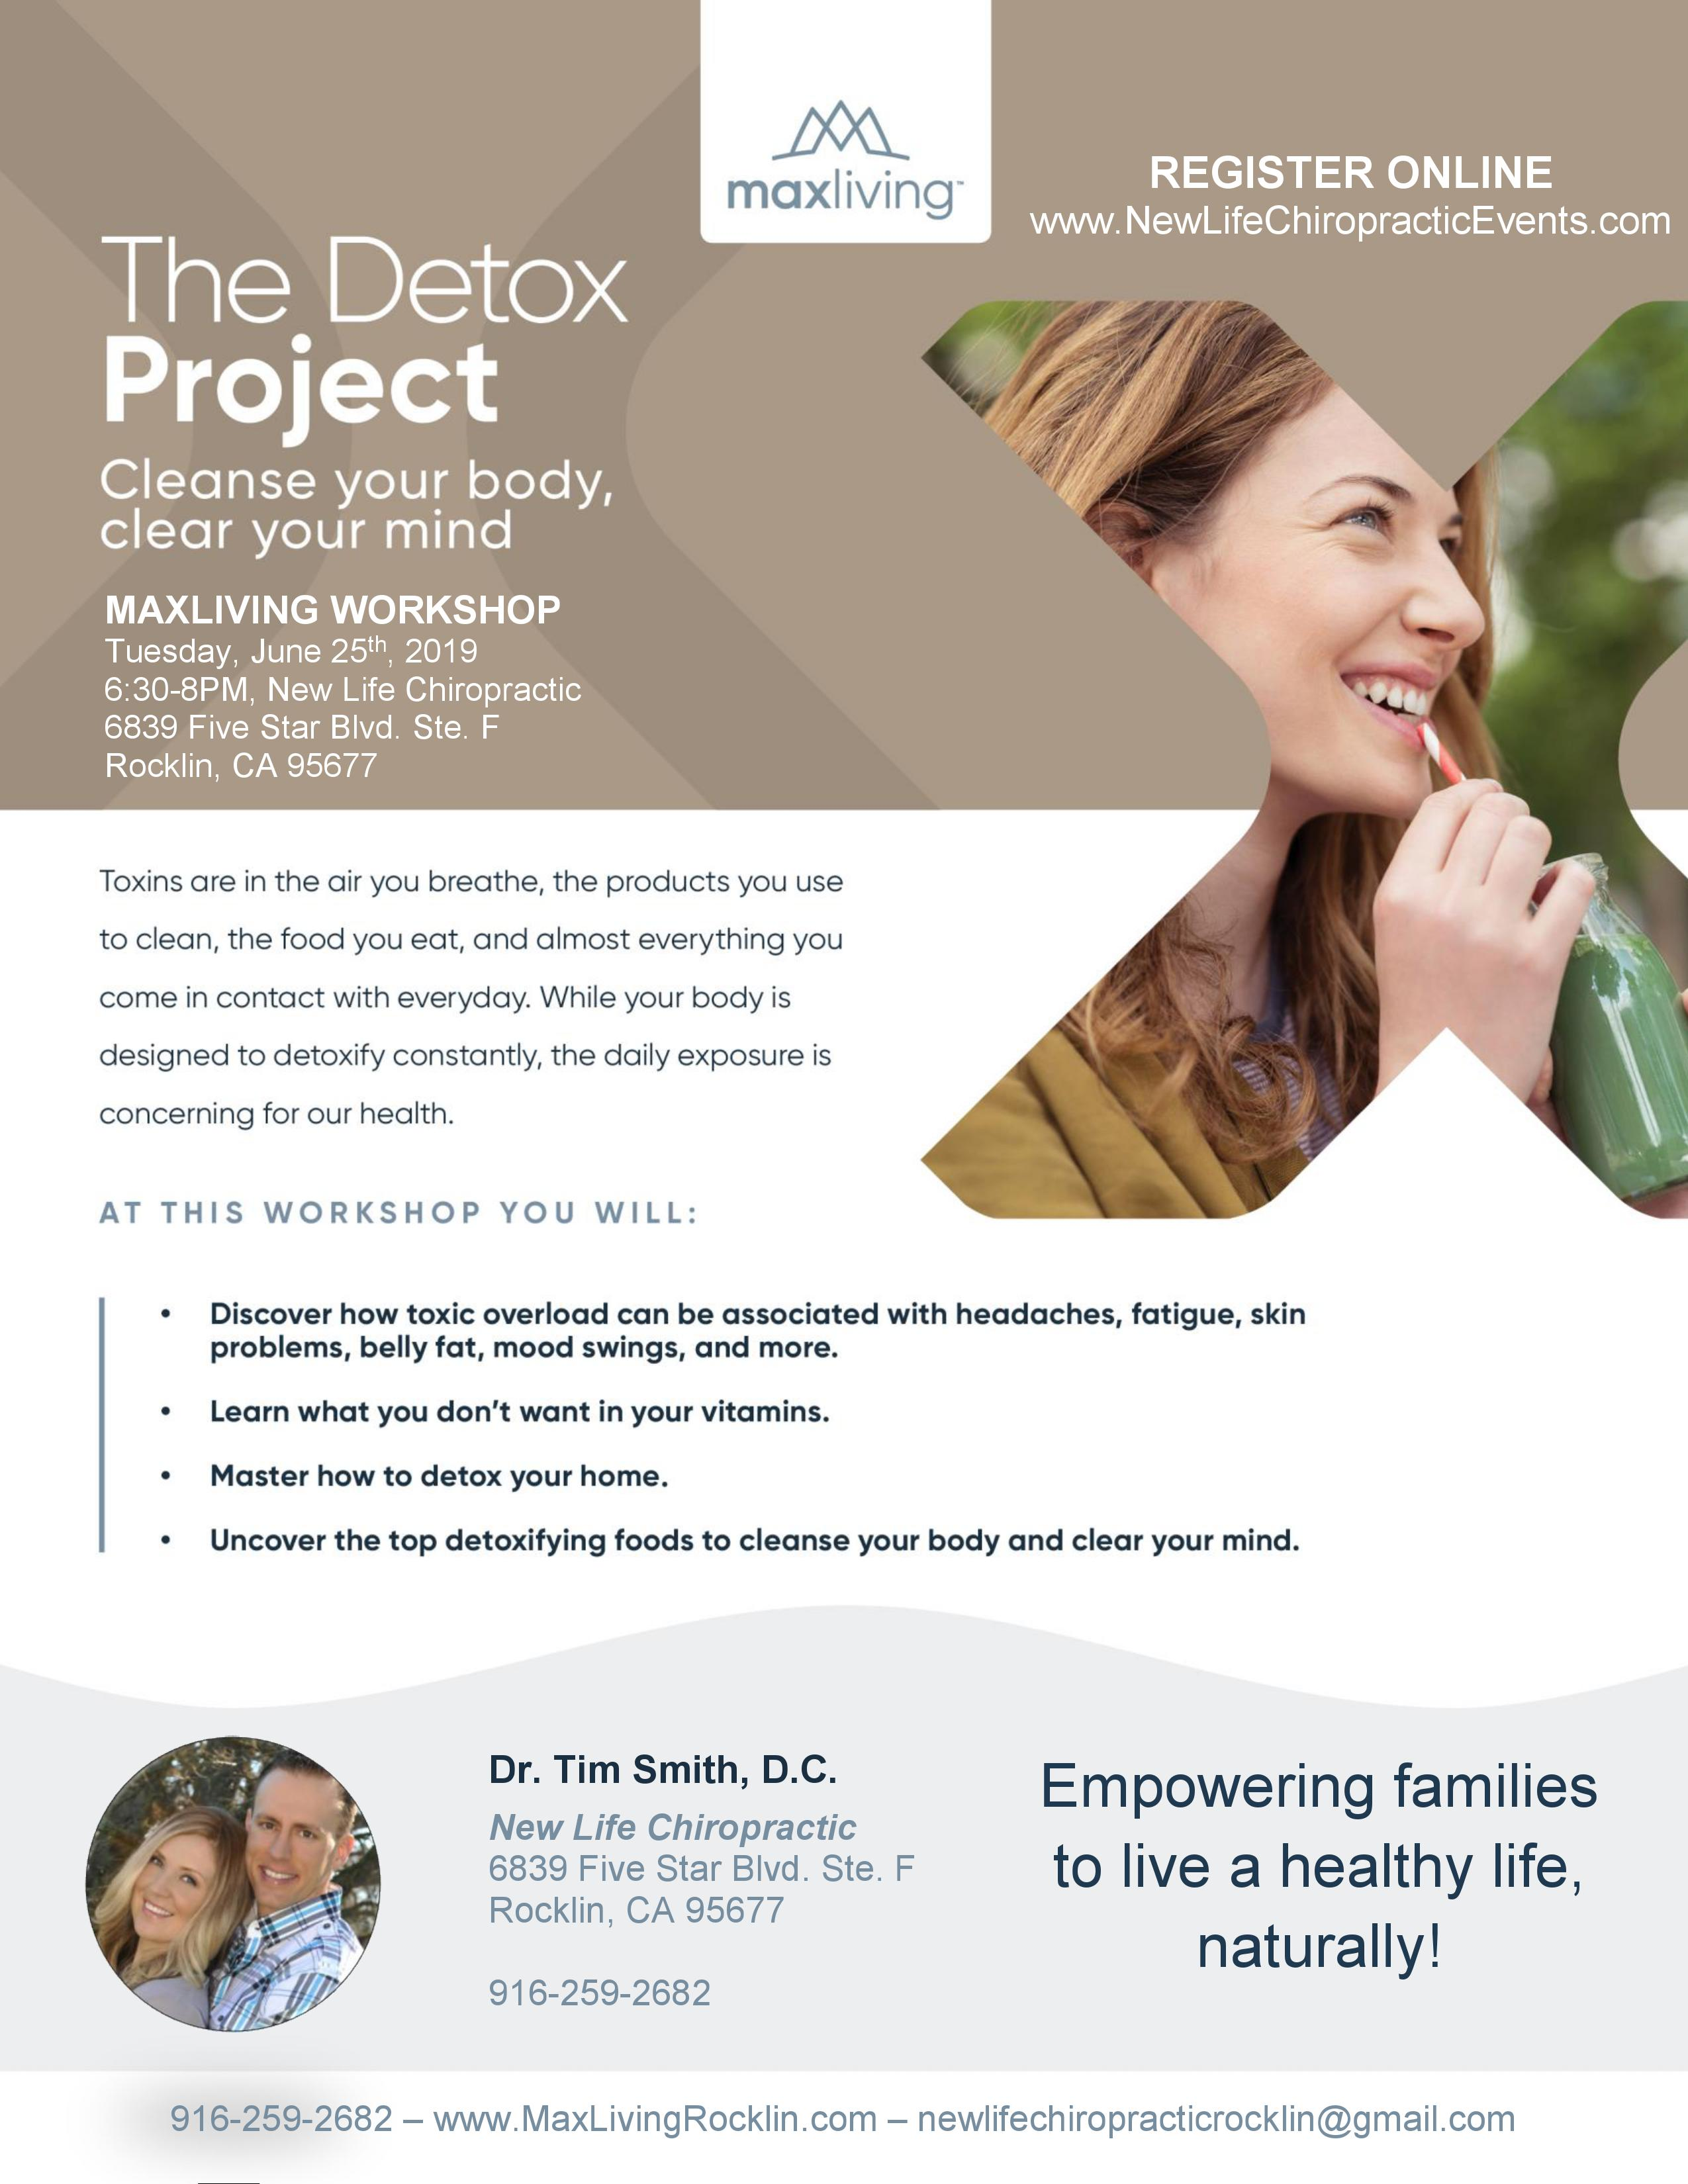 The Detox Project Event Flyer